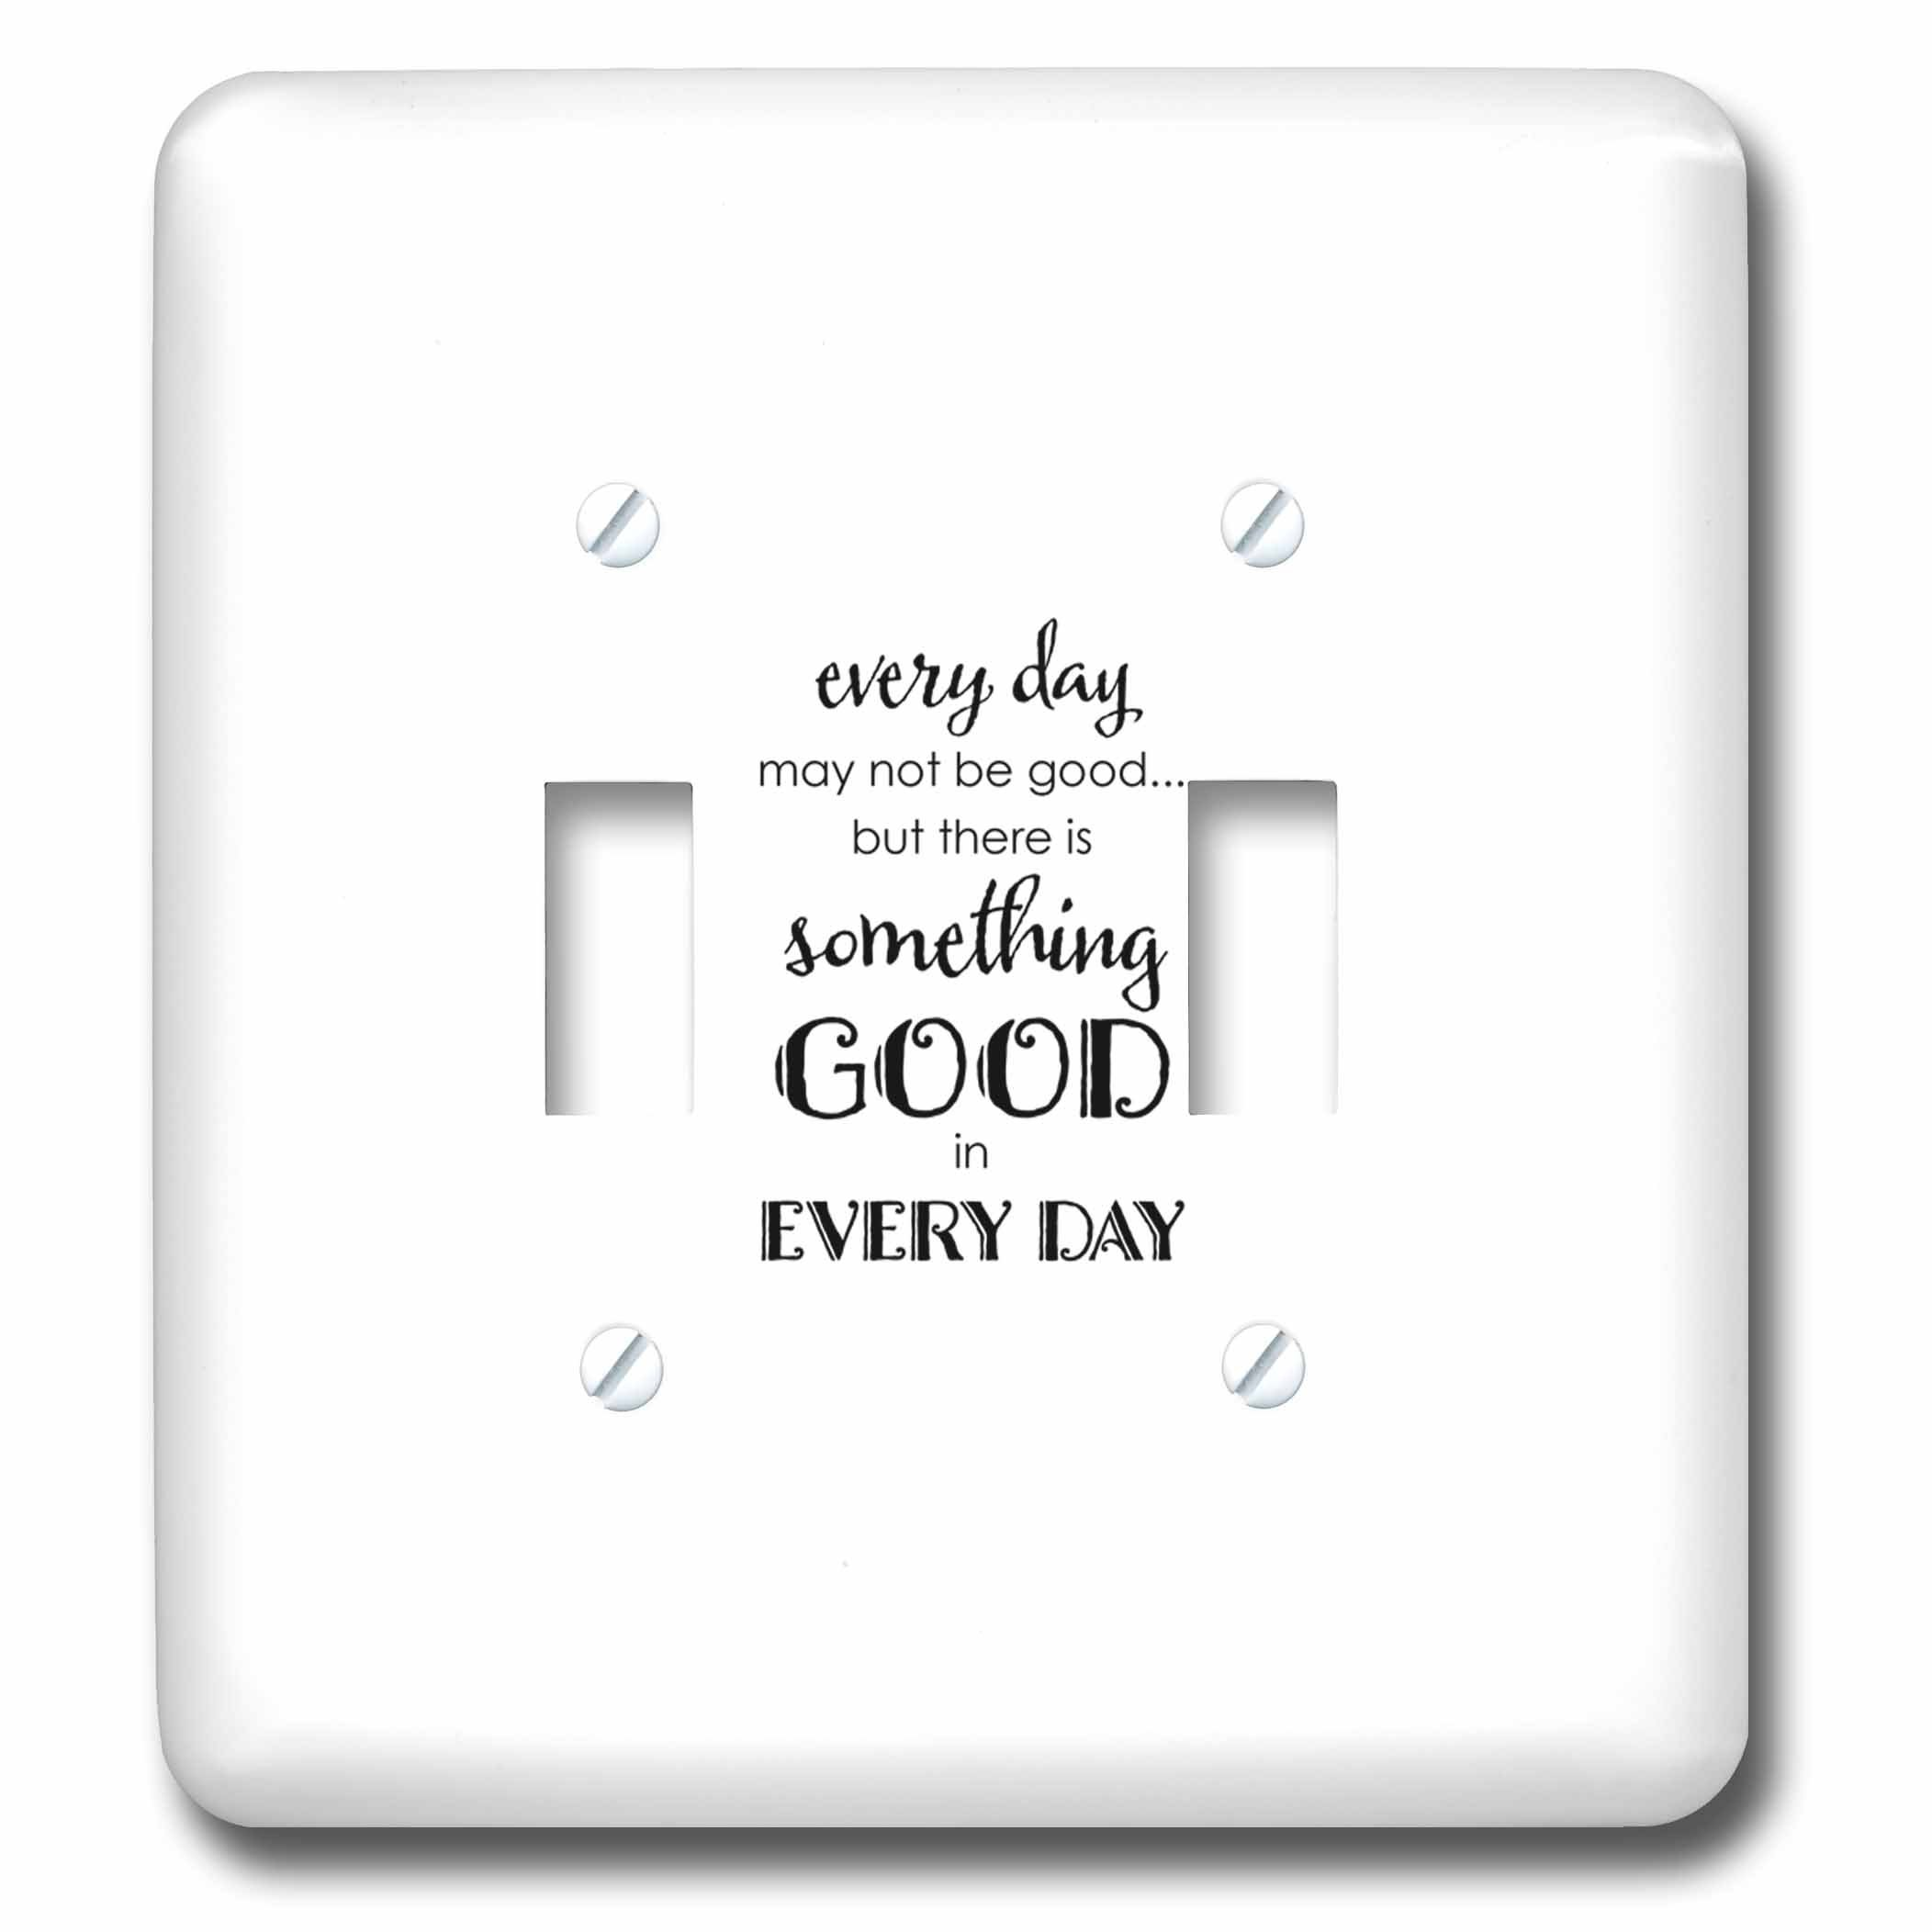 3dRose Uta Naumann Sayings and Typography - Bible Proverb Motivational Typography - Something Good In Every Day - Light Switch Covers - double toggle switch (lsp_275144_2)